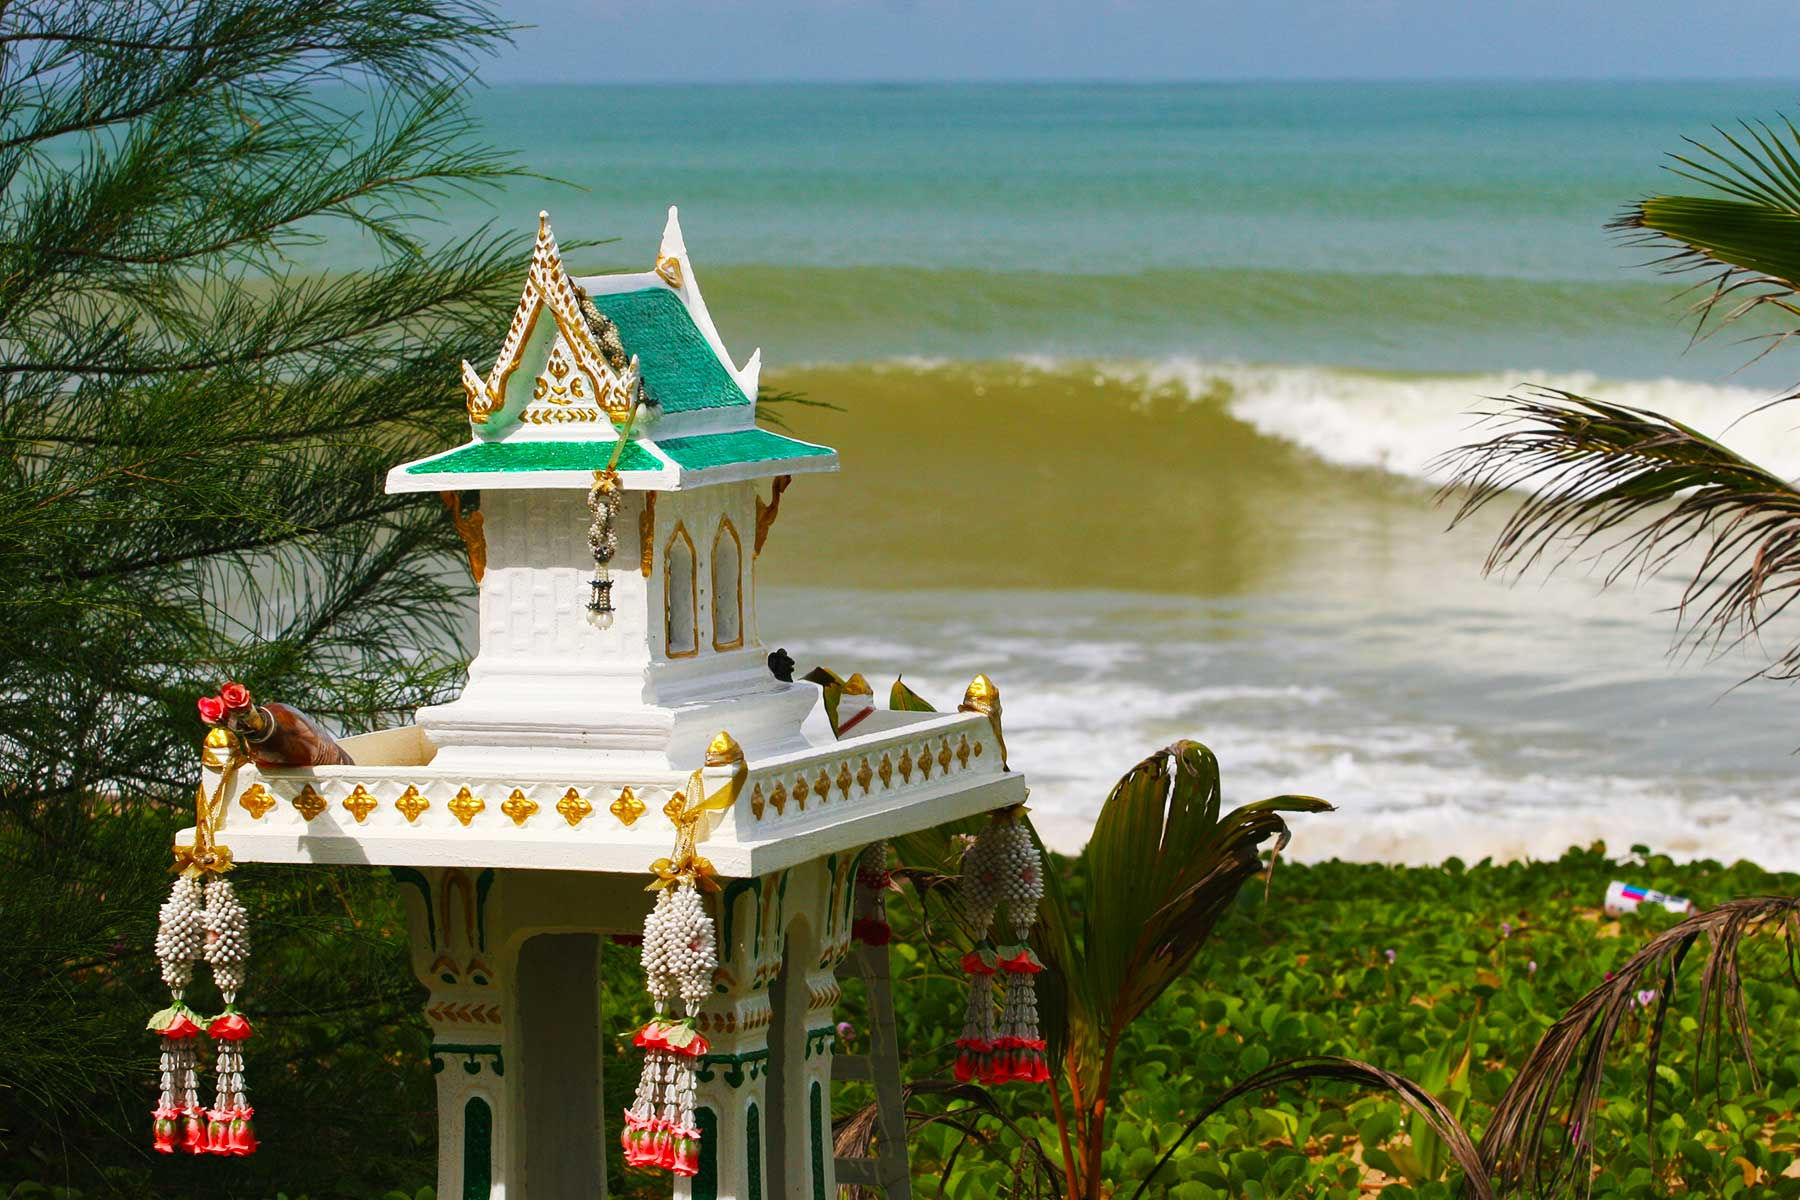 Surfing Thailand - Surf Tourism Research - Dr Steven A Martin - Phuket - Surf Resource Sustainability Index